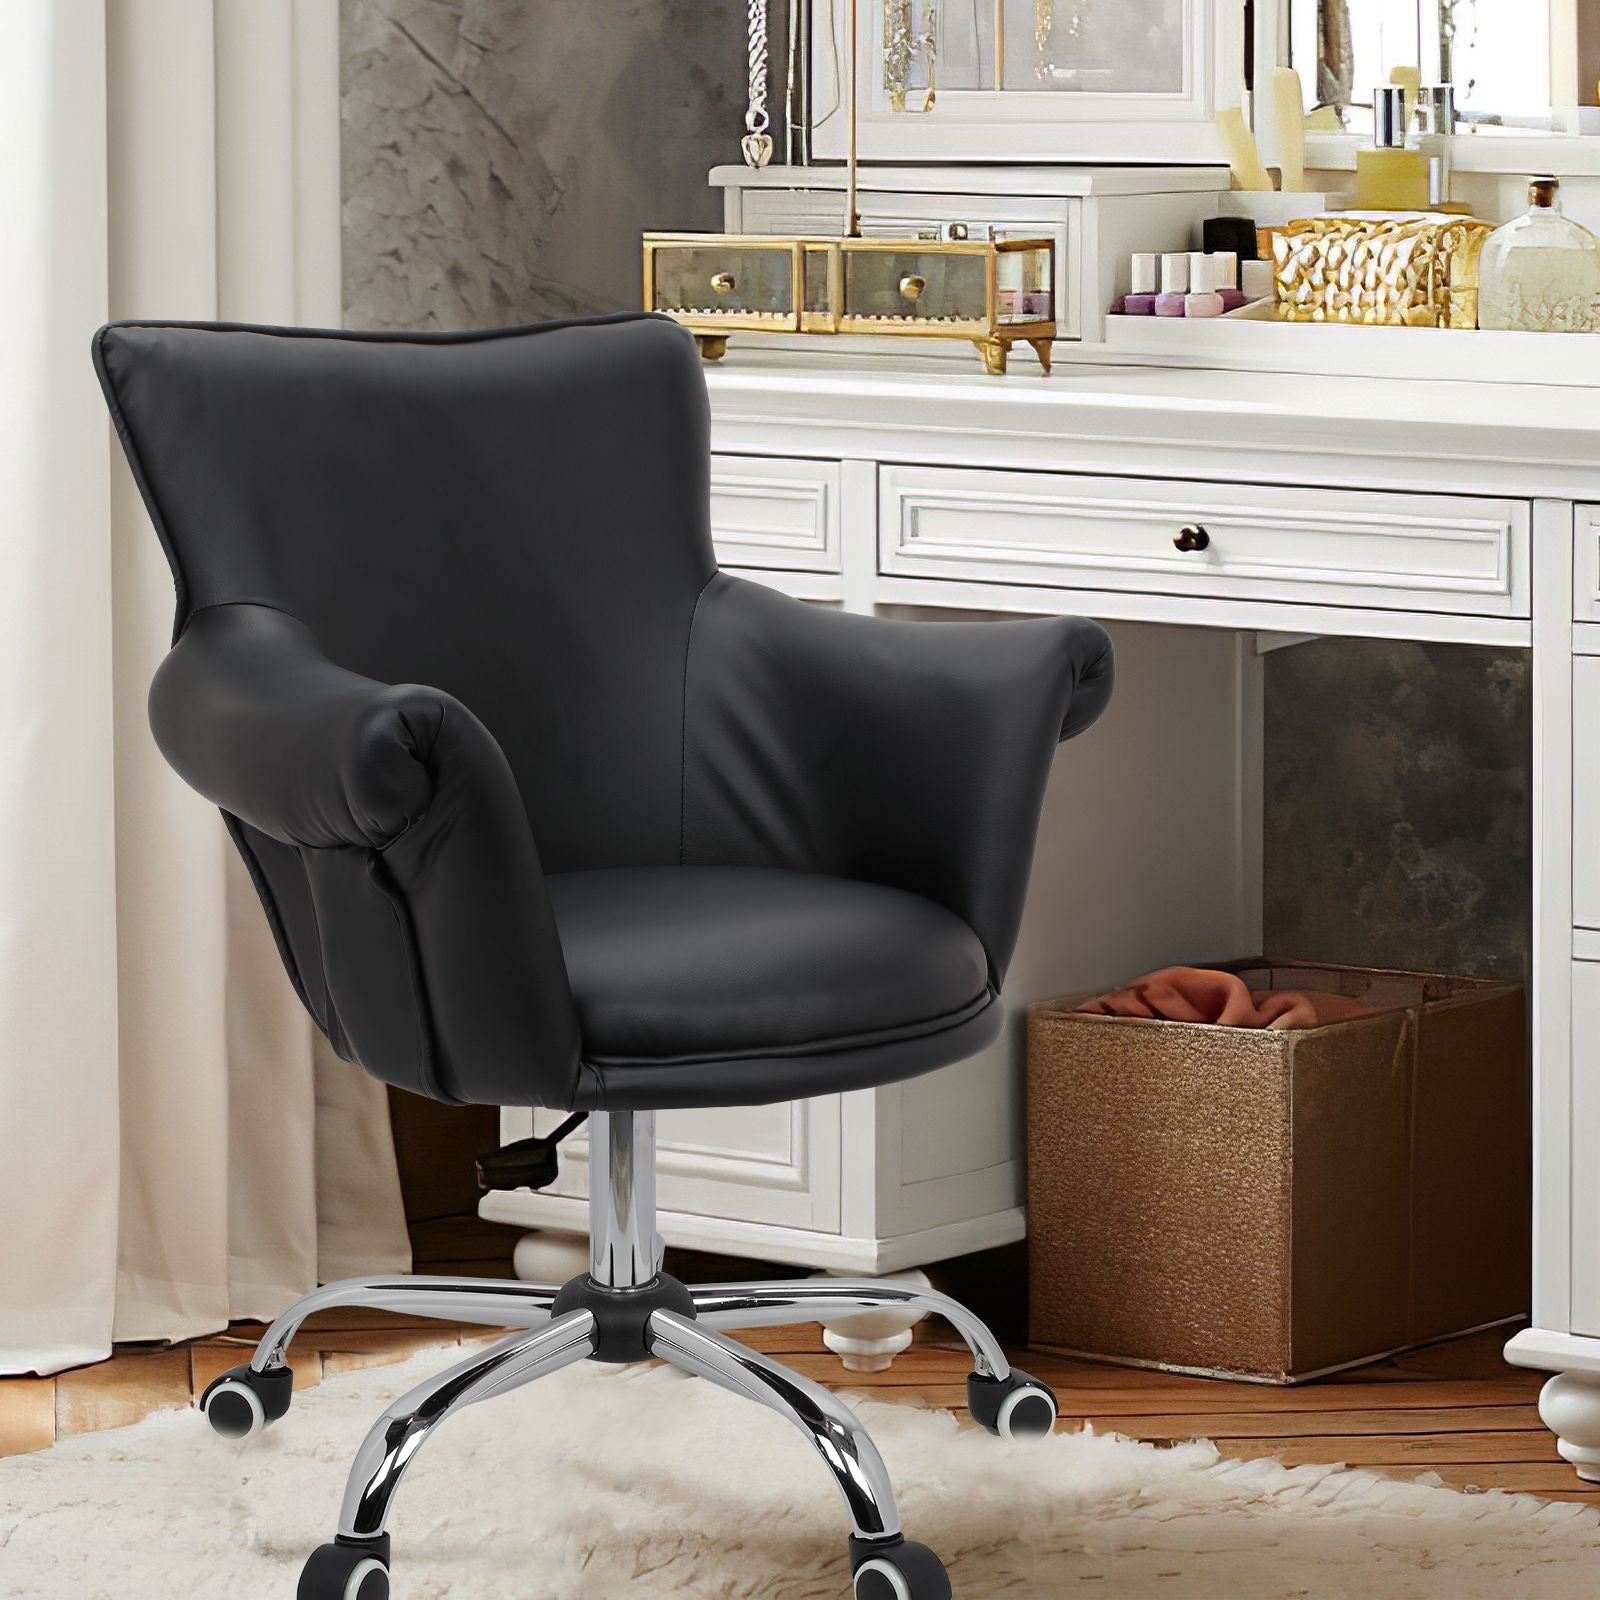 Modern Mid Back Microfiber Home Office Chair Computer Desk Chair Swivel Beauty Nail Salon Spa Vanity Seat